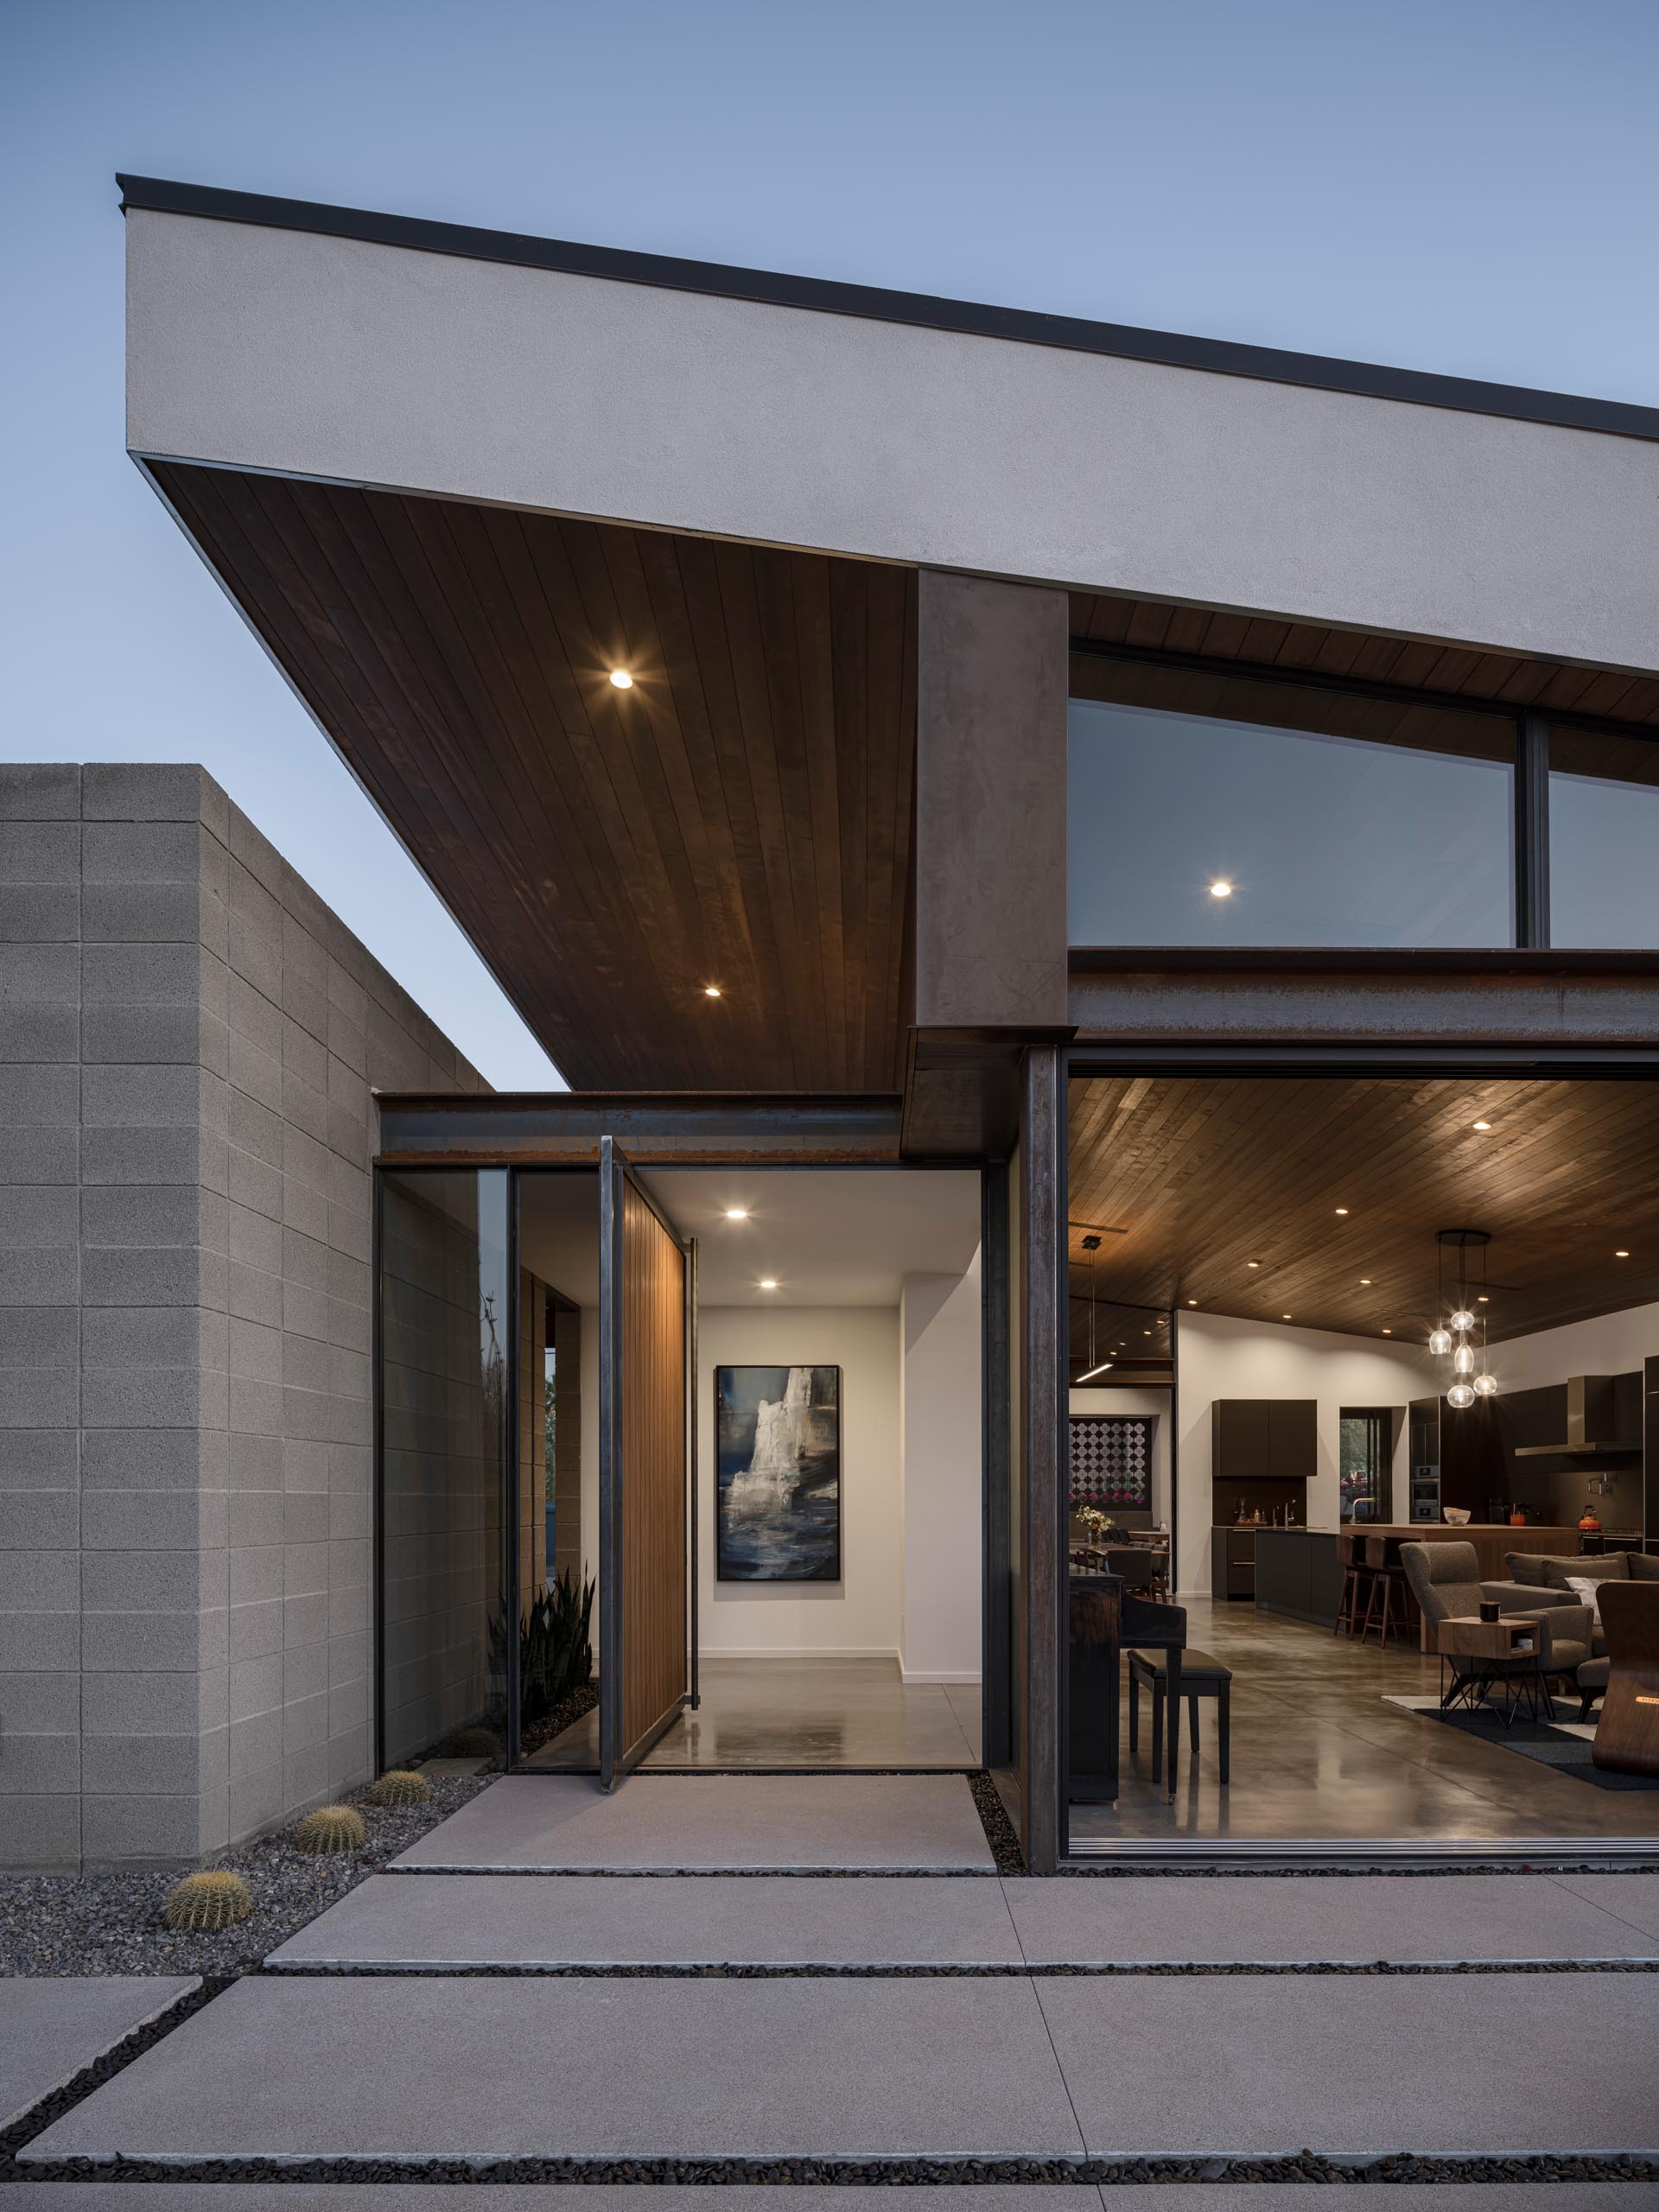 An oversized wood front door with a metal frame pivots to create an eye-catching entryway that opens to a foyer. A small garden is featured on both the exterior and interior of the home.